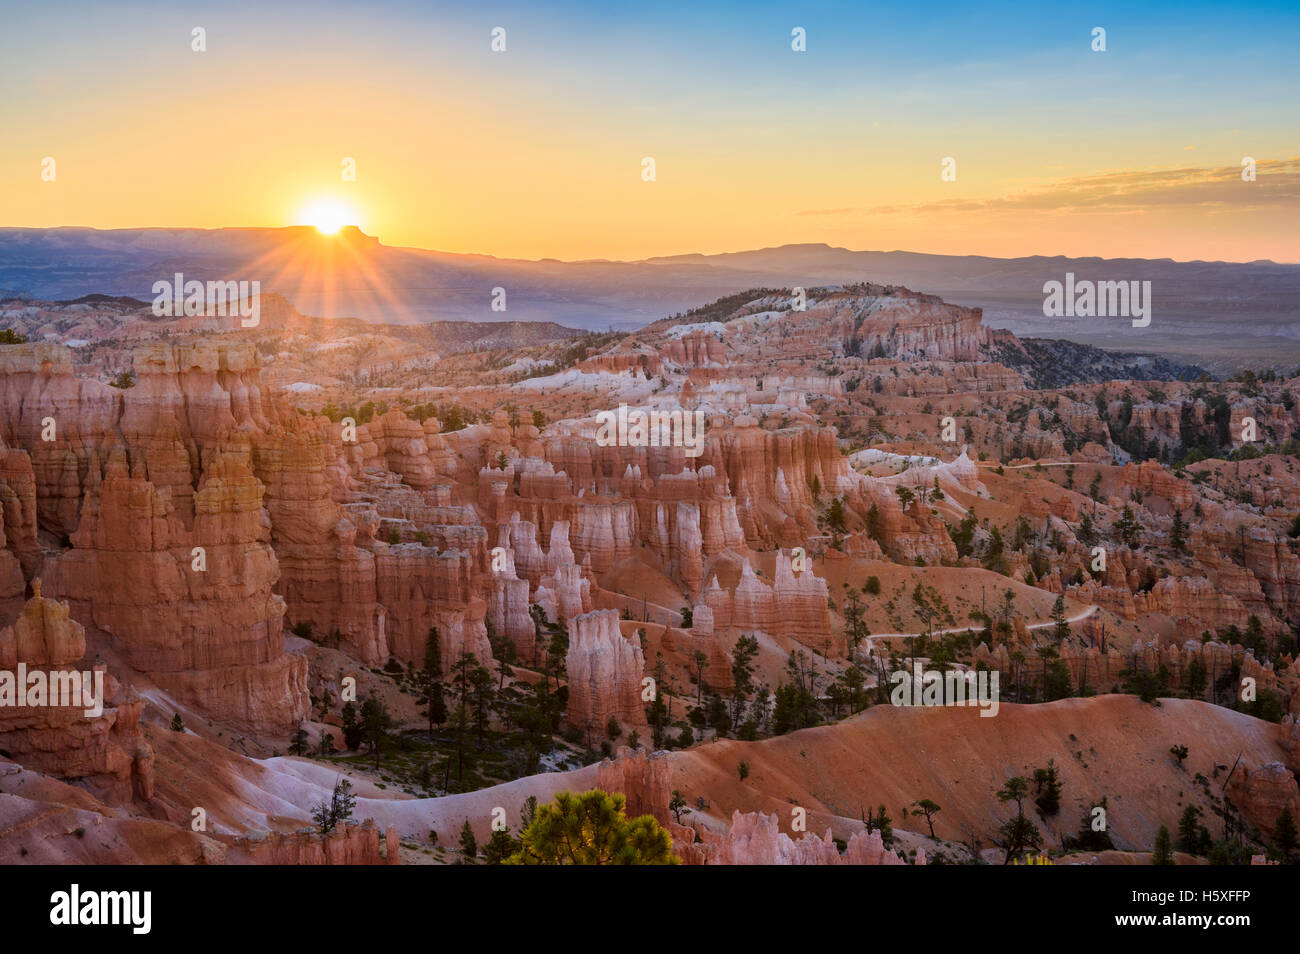 Sunrise, scenic views, Bryce Canyon National Park, located Utah, in the Southwestern United States. - Stock Image